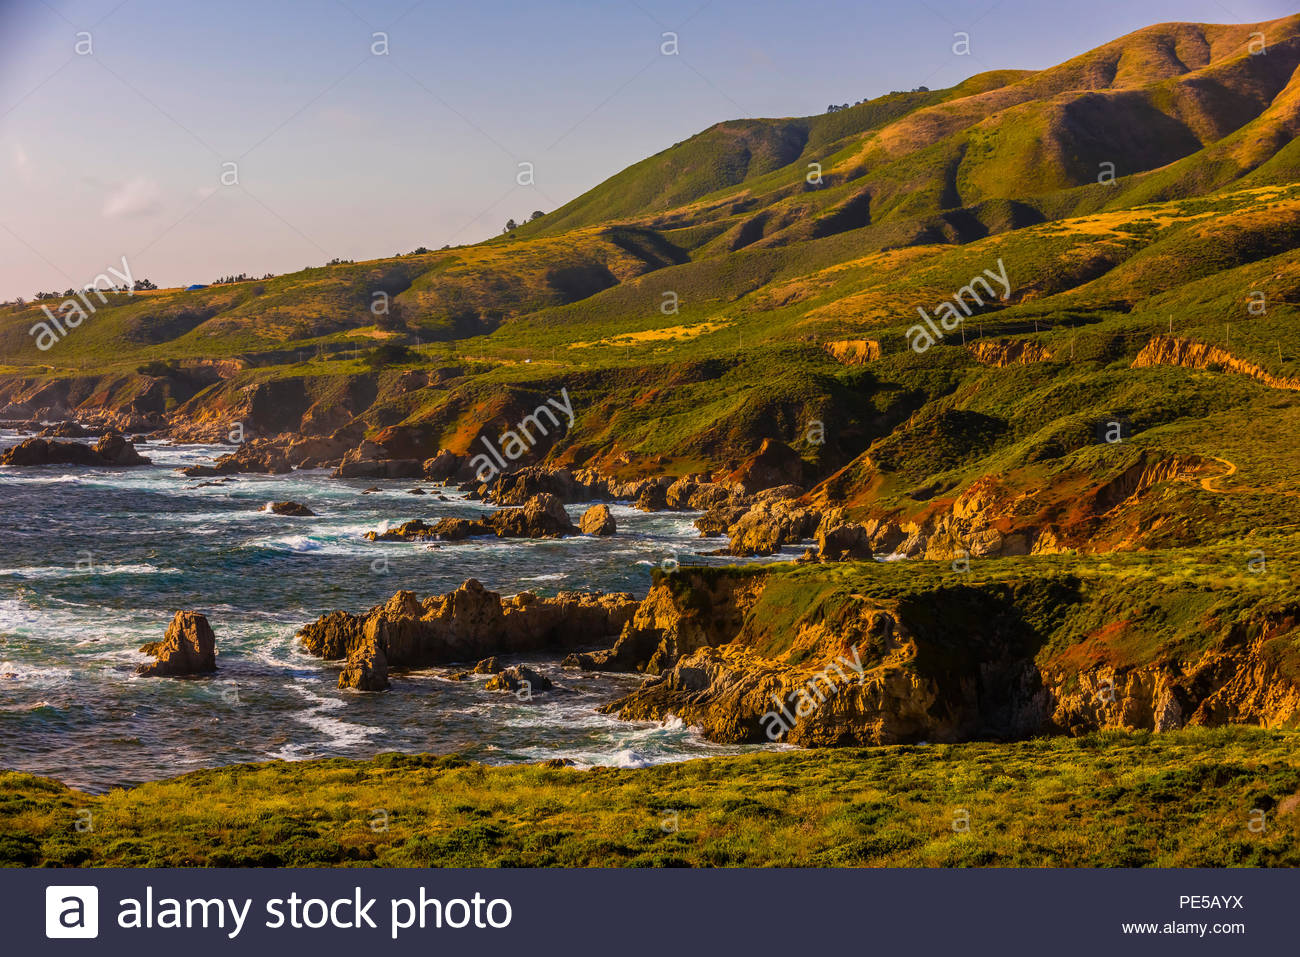 The rugged Big Sur coastline along Highway 1, between Carmel Highlands and Big Sur, Monterey County, California USA. - Stock Image